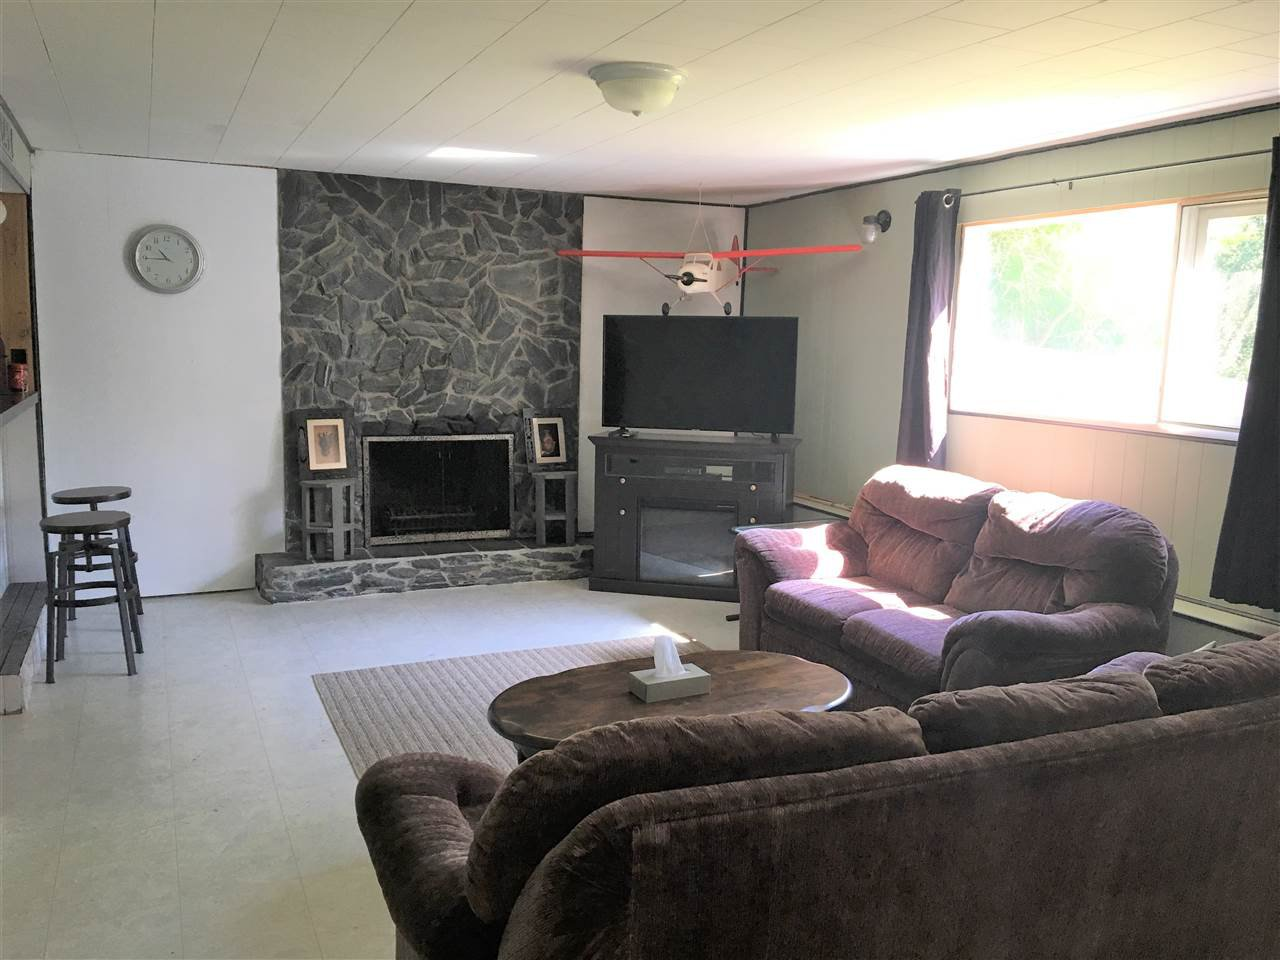 Photo 18: Photos: 388 ALLARD Street in Quesnel: Quesnel - Town House for sale (Quesnel (Zone 28))  : MLS®# R2414561